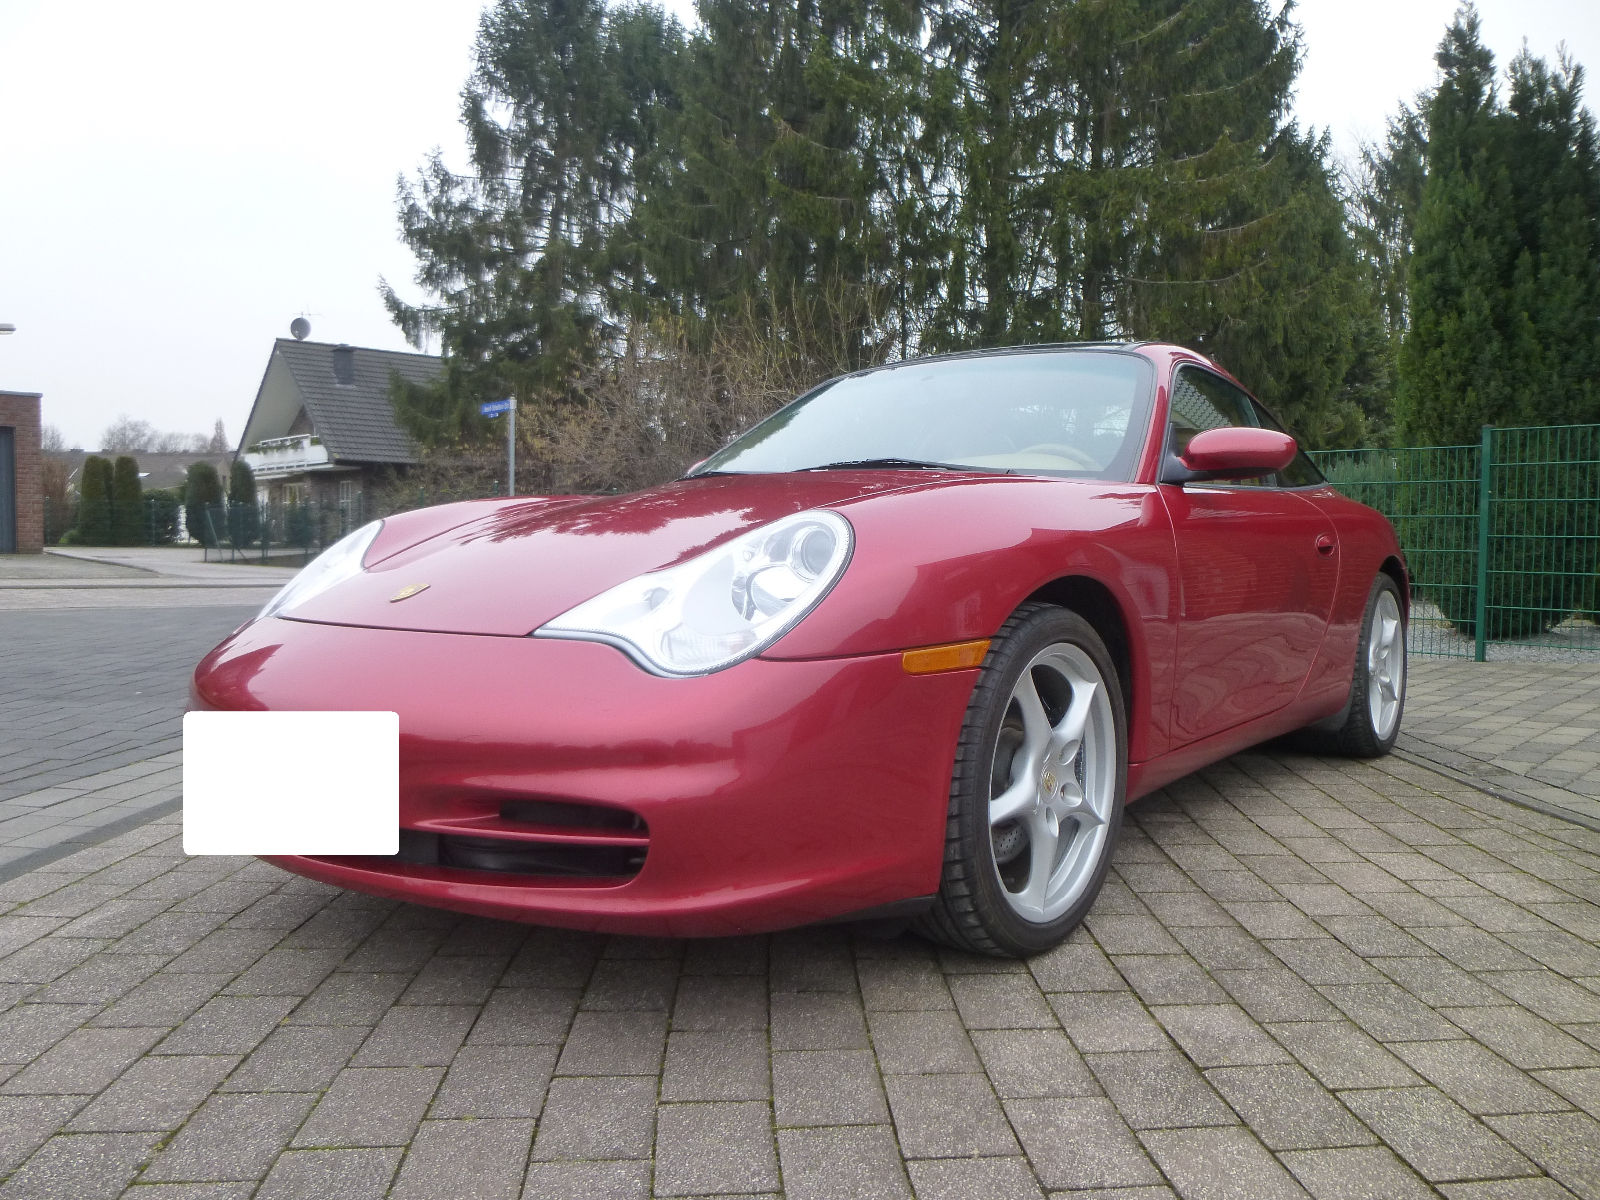 lhd PORSCHE 911 996 (07/2003) - RED METALLIC - lieu: